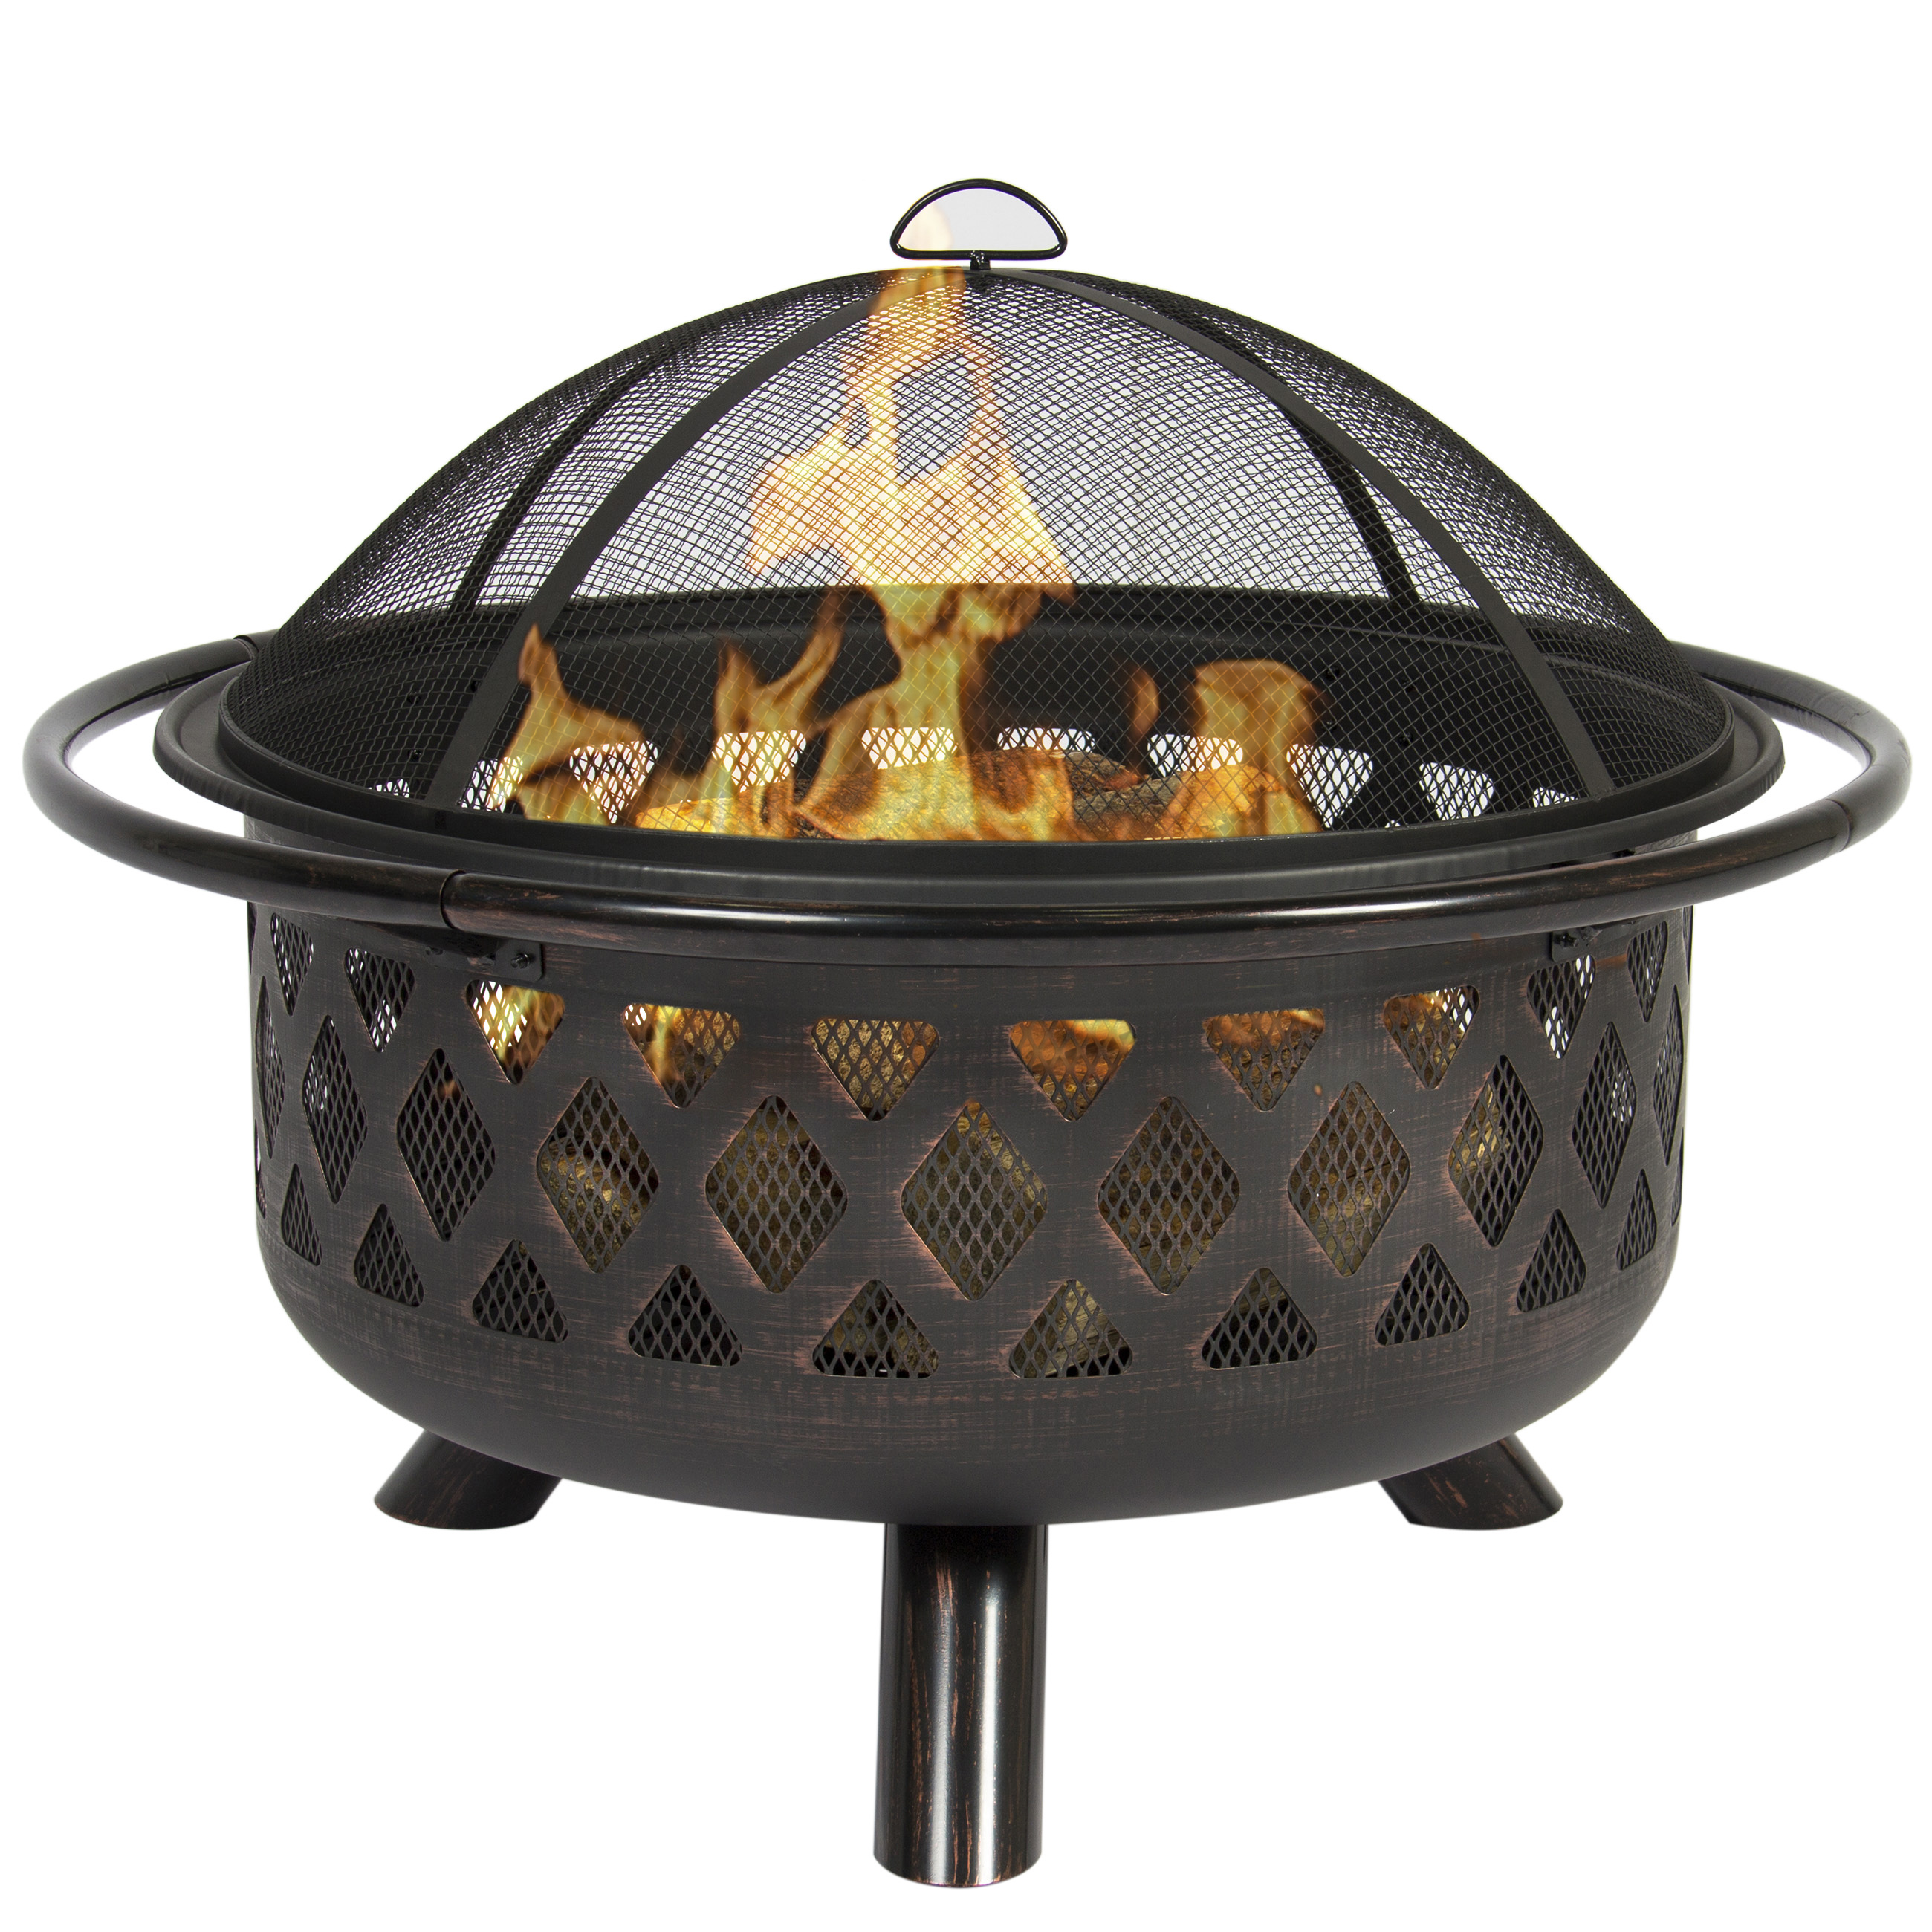 "Best Choice Products 36"" Bronze Finish Firebowl Fire Pit Patio Backyard Outdoor Garden Stove Firepit"